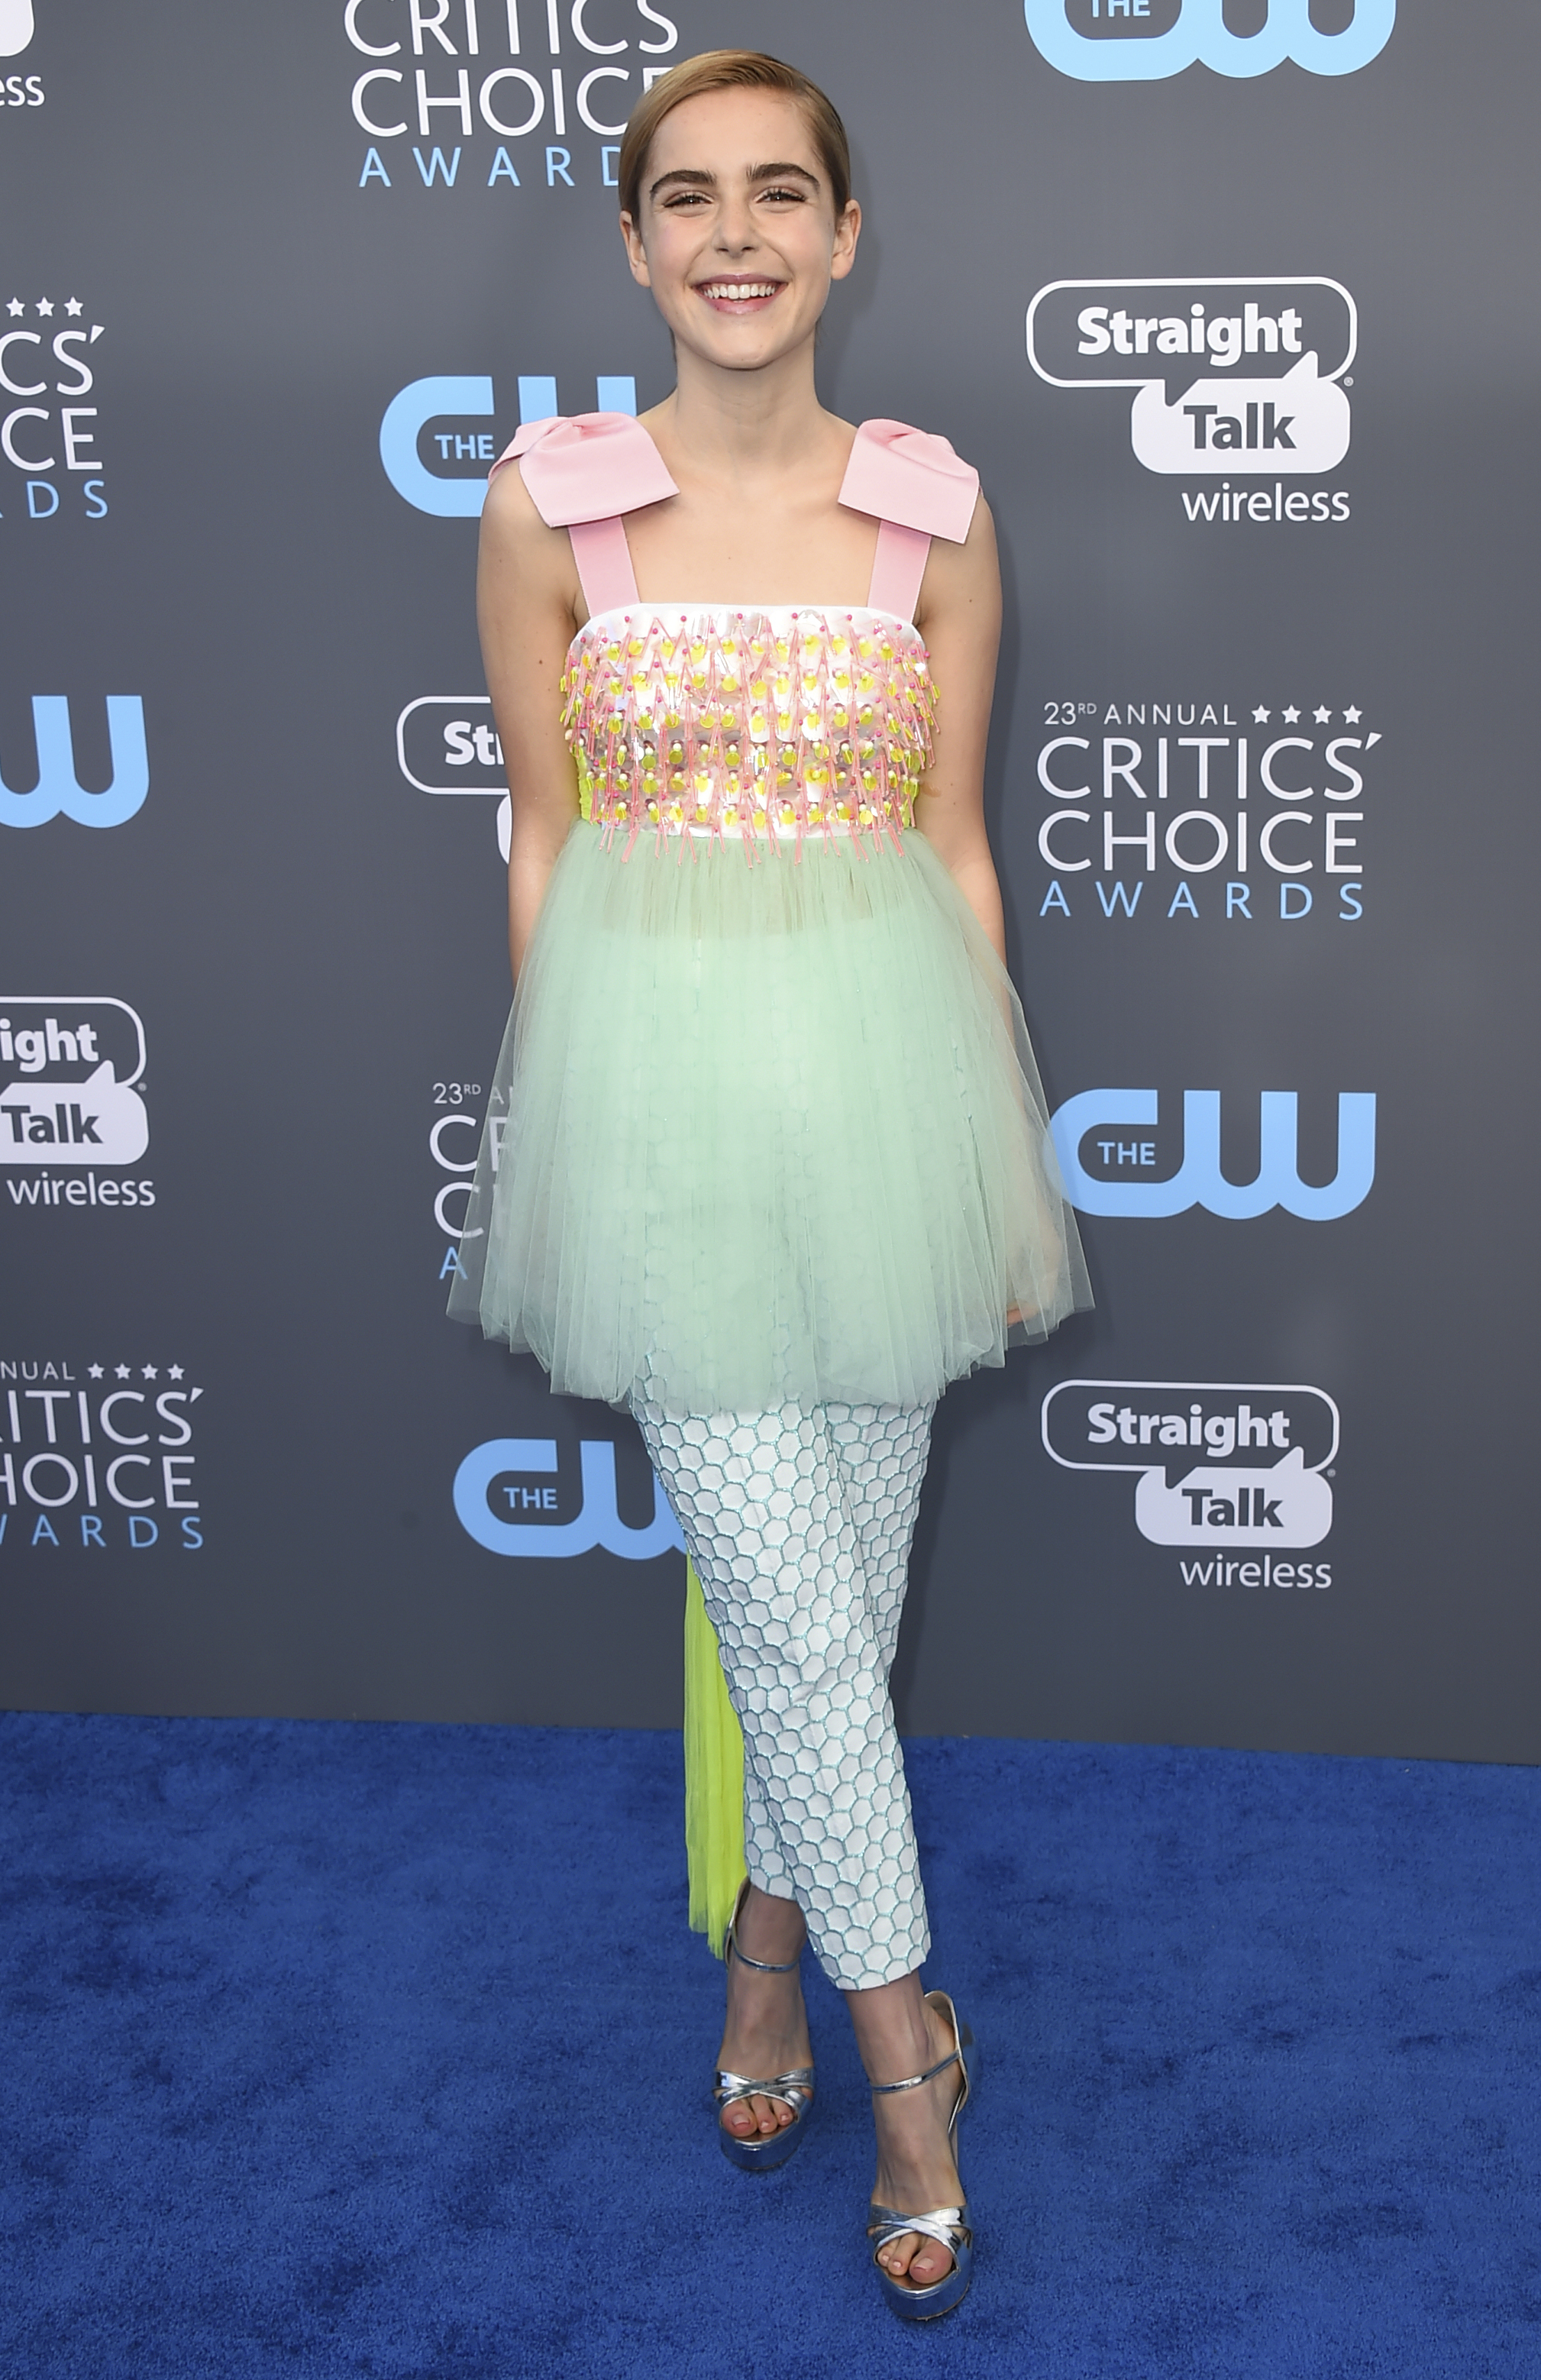 <div class='meta'><div class='origin-logo' data-origin='AP'></div><span class='caption-text' data-credit='Jordan Strauss/Invision/AP'>Kiernan Shipka arrives at the 23rd annual Critics' Choice Awards at the Barker Hangar on Thursday, Jan. 11, 2018, in Santa Monica, Calif.</span></div>